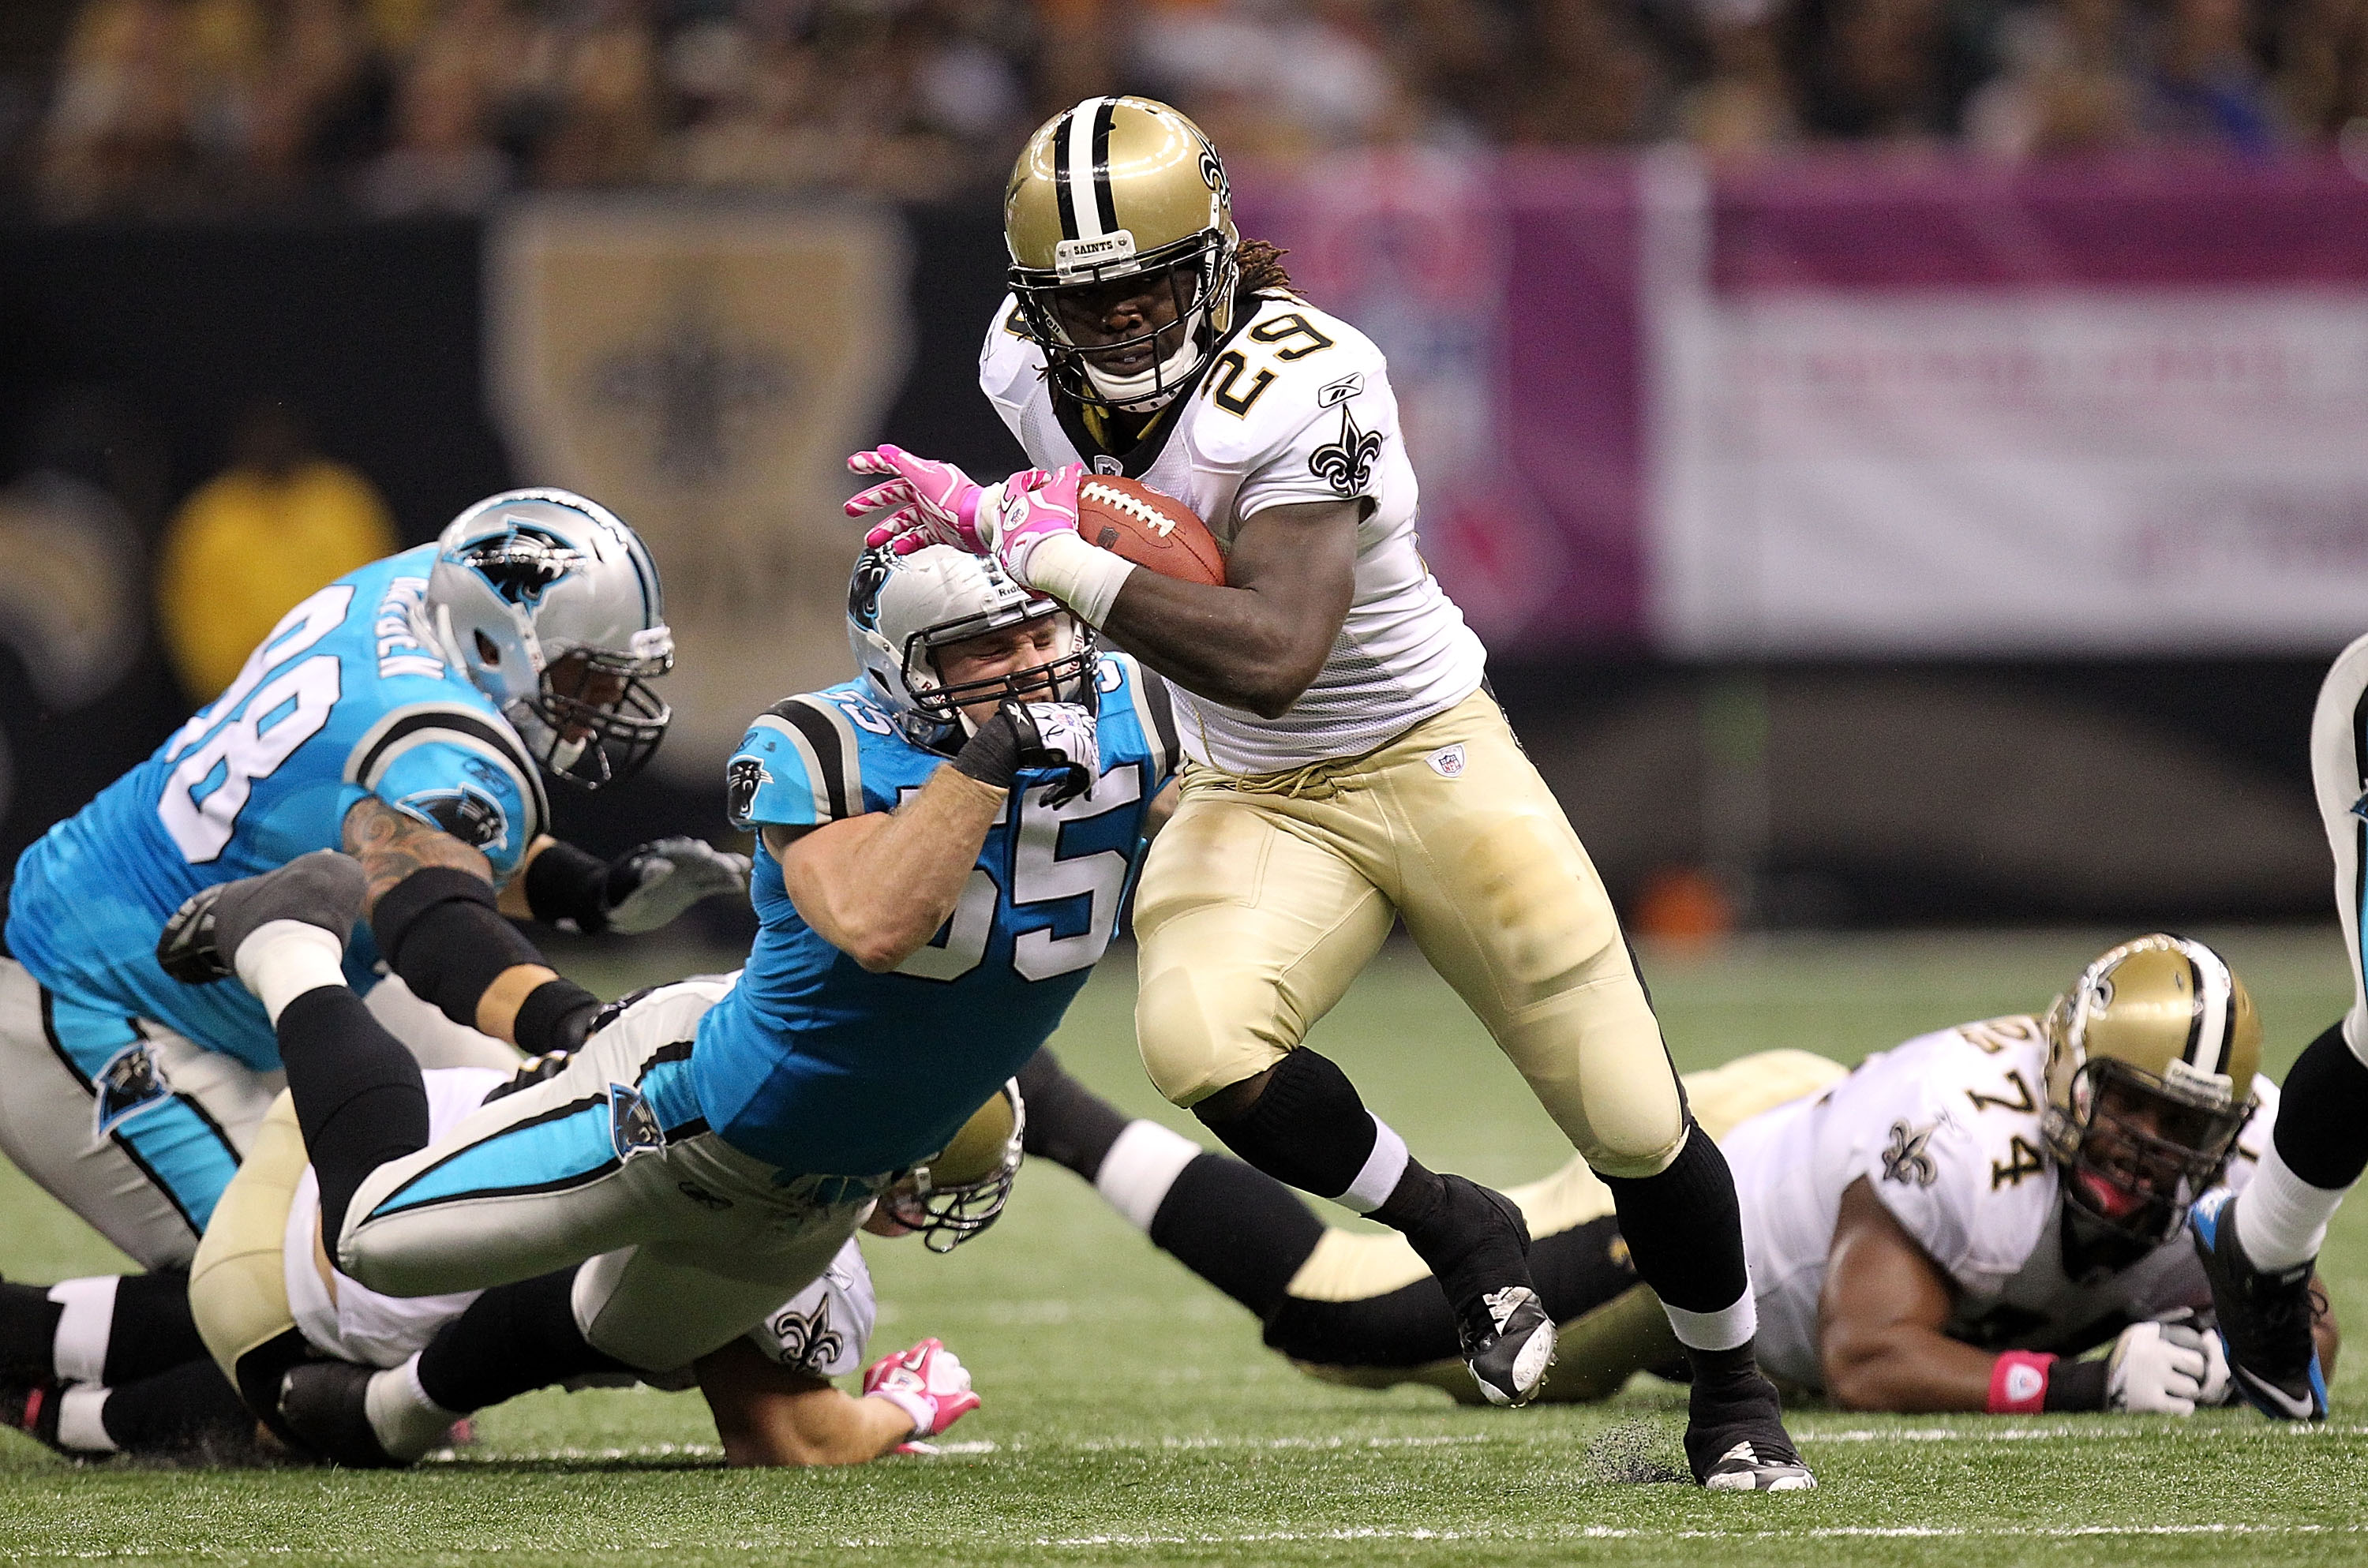 NEW ORLEANS - OCTOBER 03:  Running back Chris Ivory #29 of the New Orleans Saints at the Louisiana Superdome on October 3, 2010 in New Orleans, Louisiana.  (Photo by Ronald Martinez/Getty Images)